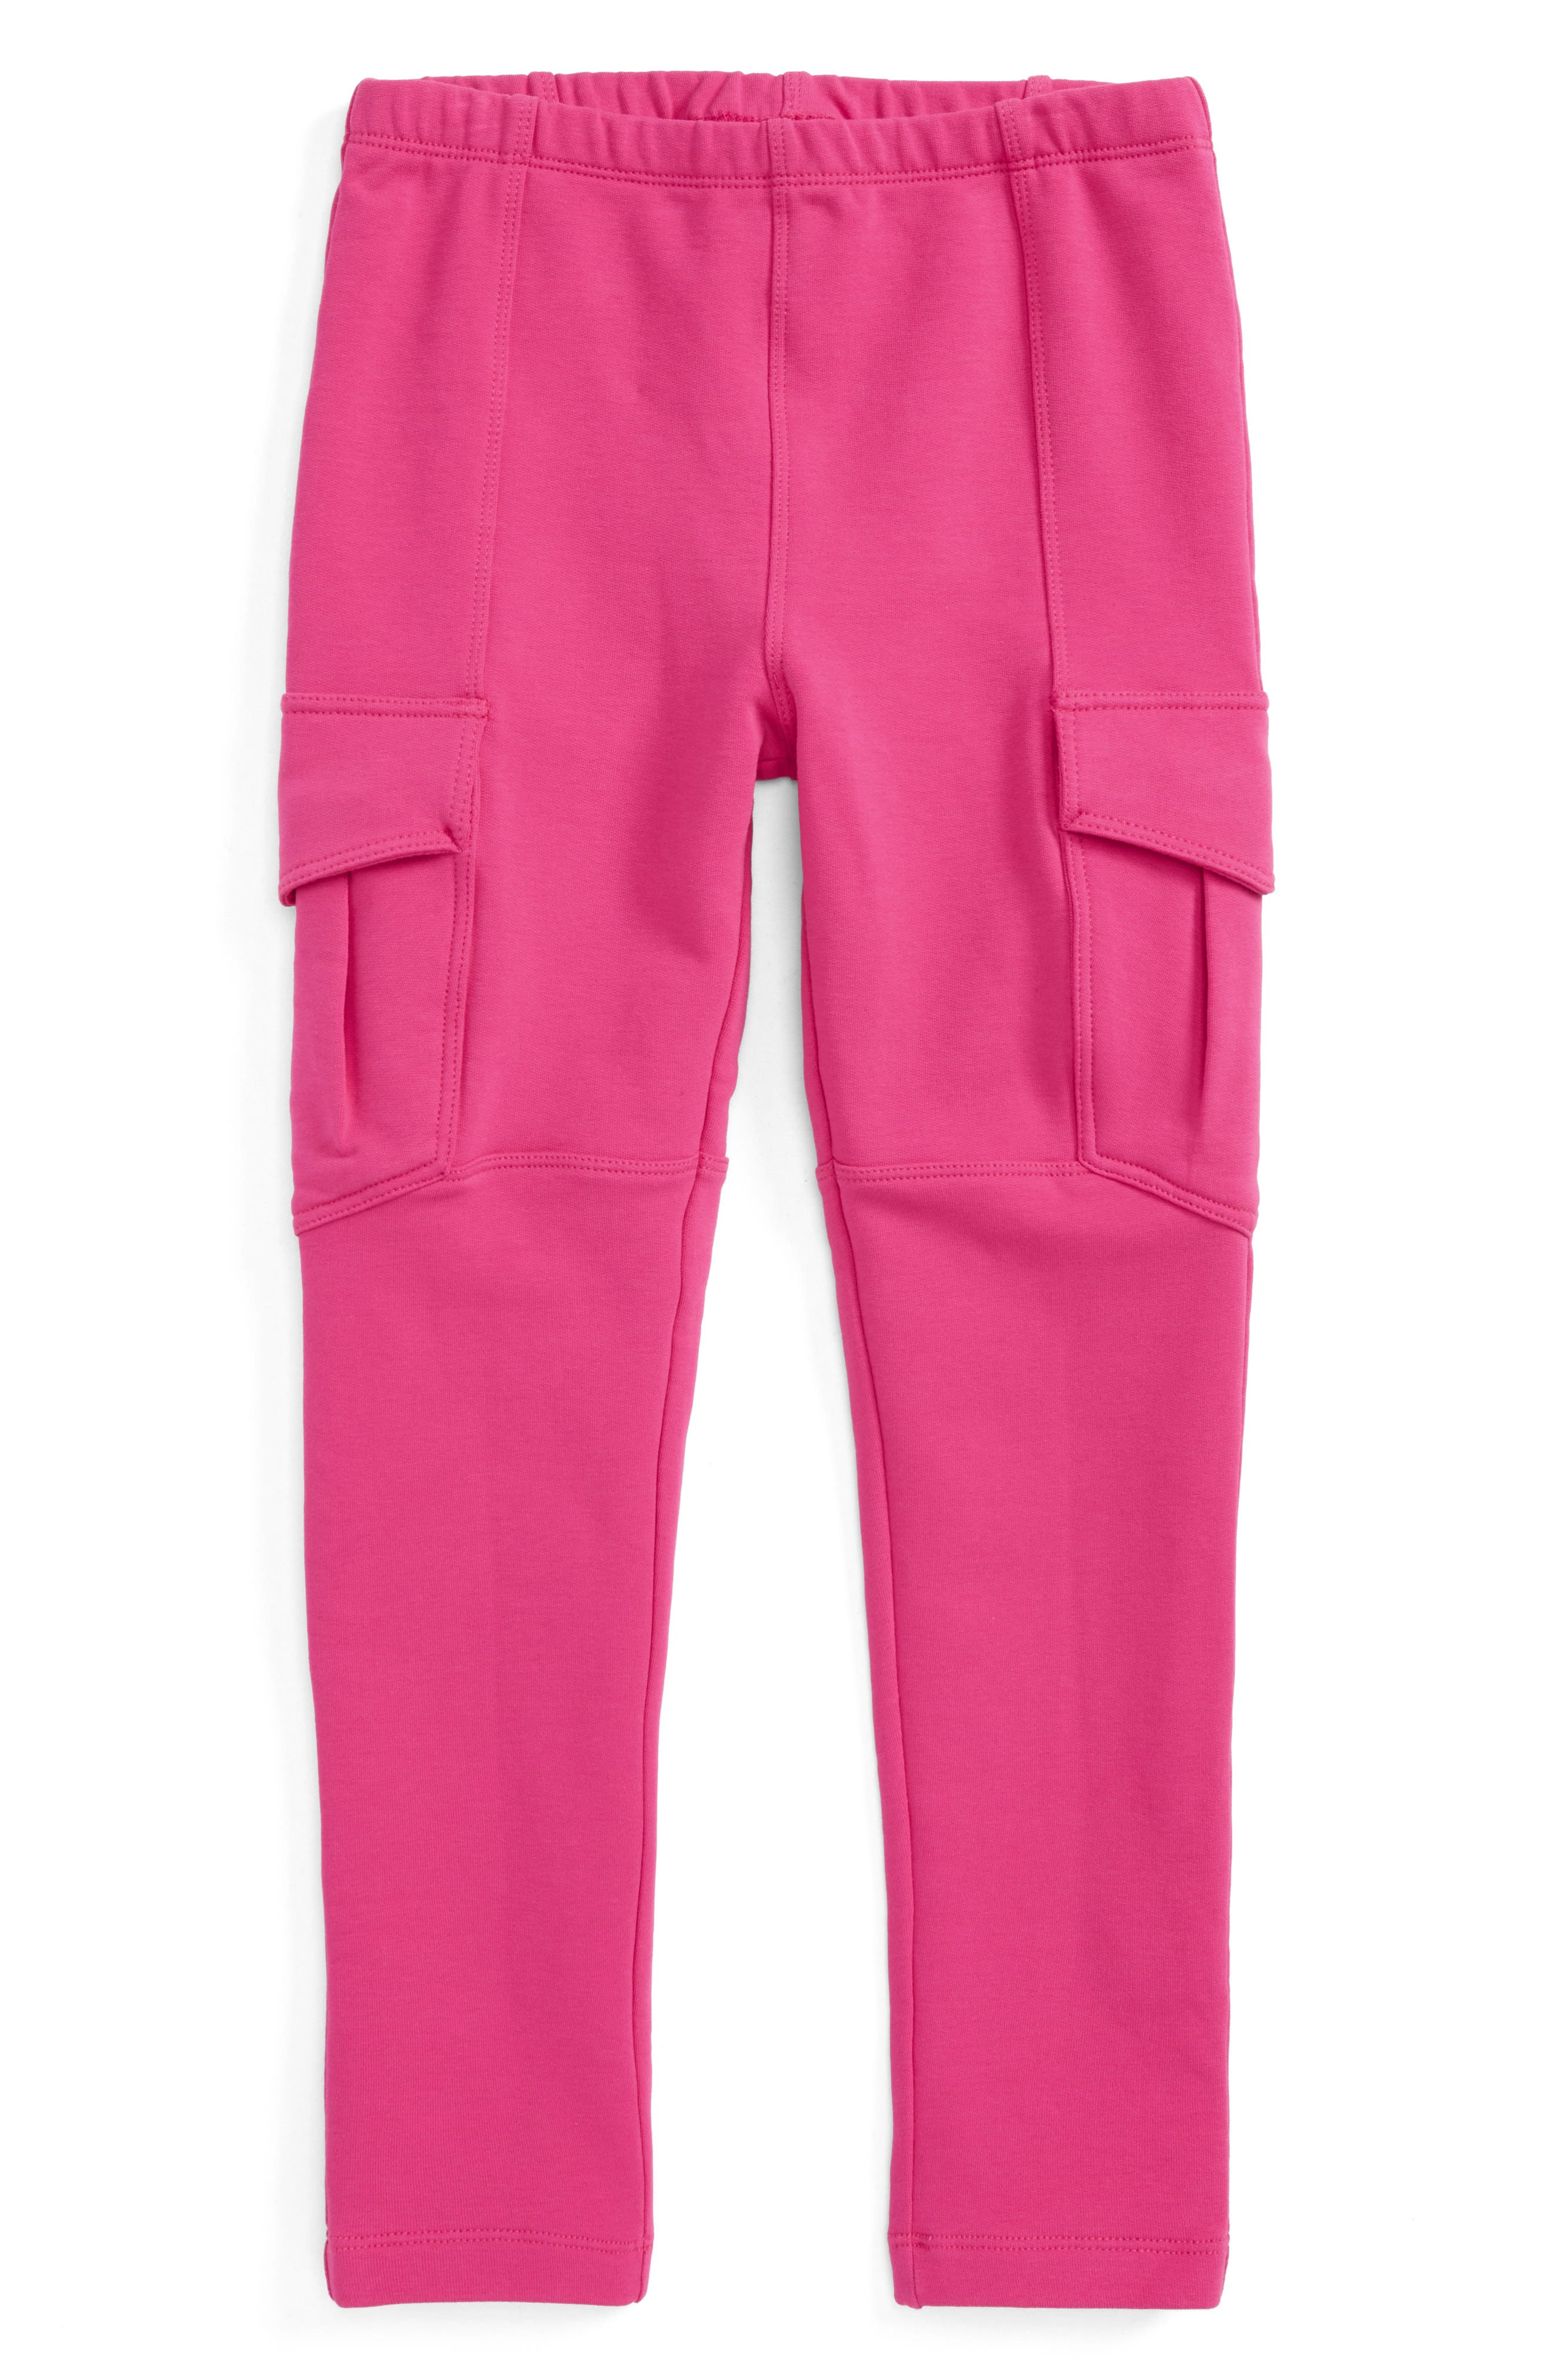 Alternate Image 1 Selected - Tea Collection French Terry Cargo Pants (Toddler Girls, Little Girls & Big Girls)